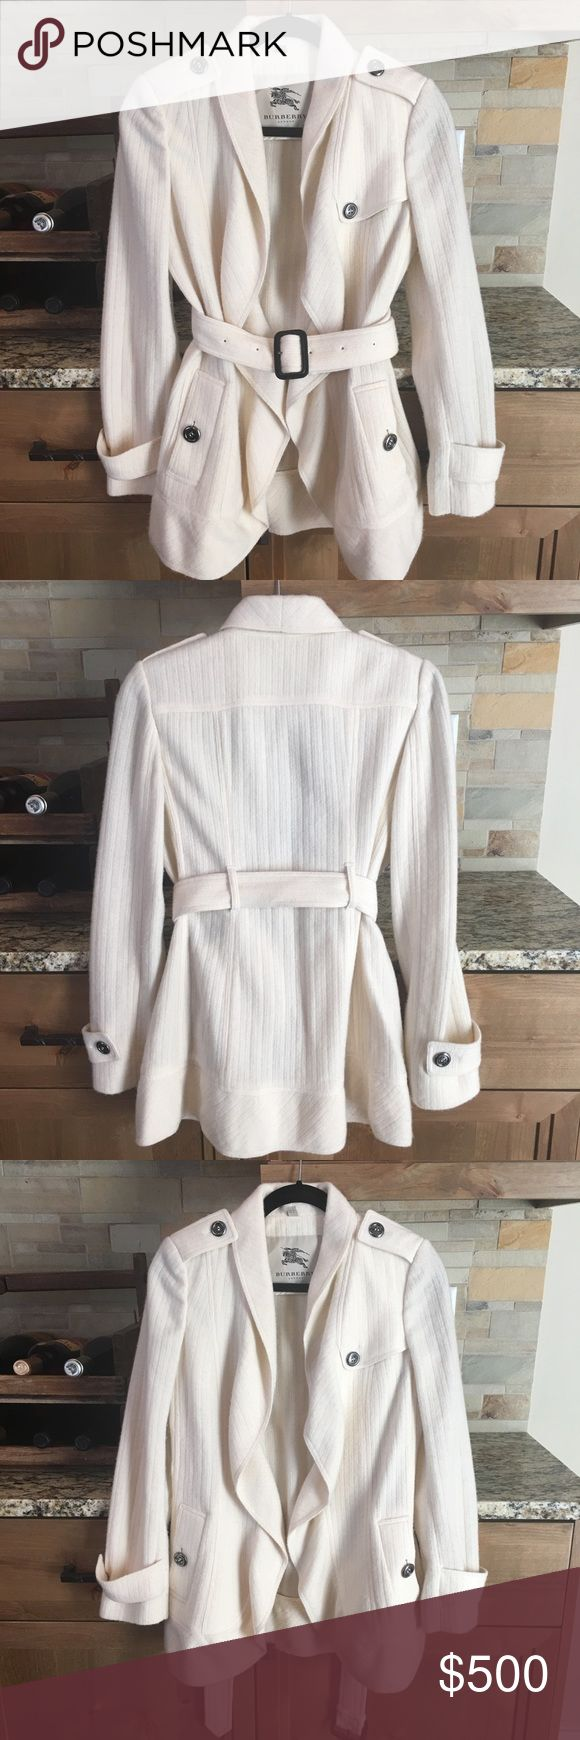 """Authentic Burberry Wool & Cashmere Knit Wrap Coat Burberry London Wool & Cashmere Knit Wrap Jacket in Cream.  Gorgeous coat in excellent condition.  Only worn 1 time. 85% Wool 15% Cashmere.  Belt around waist.  27.5"""" Length Size 4. NO Trades! Burberry Jackets & Coats"""